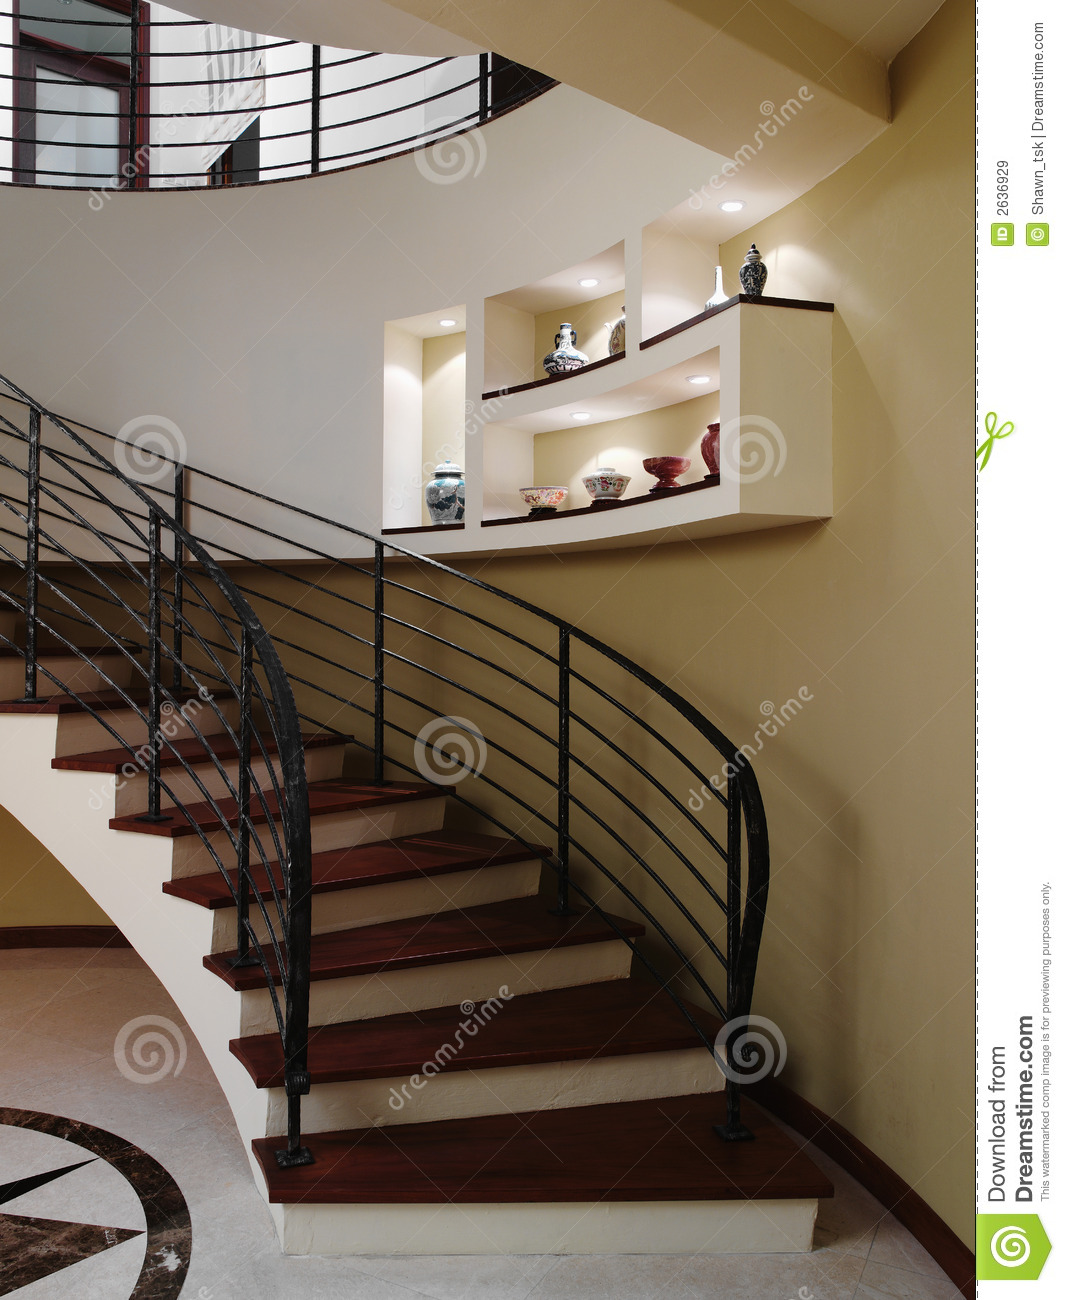 Interior Home Decoration Indoor Stairs Design Pictures: Stairs Stock Image. Image Of Ceiling